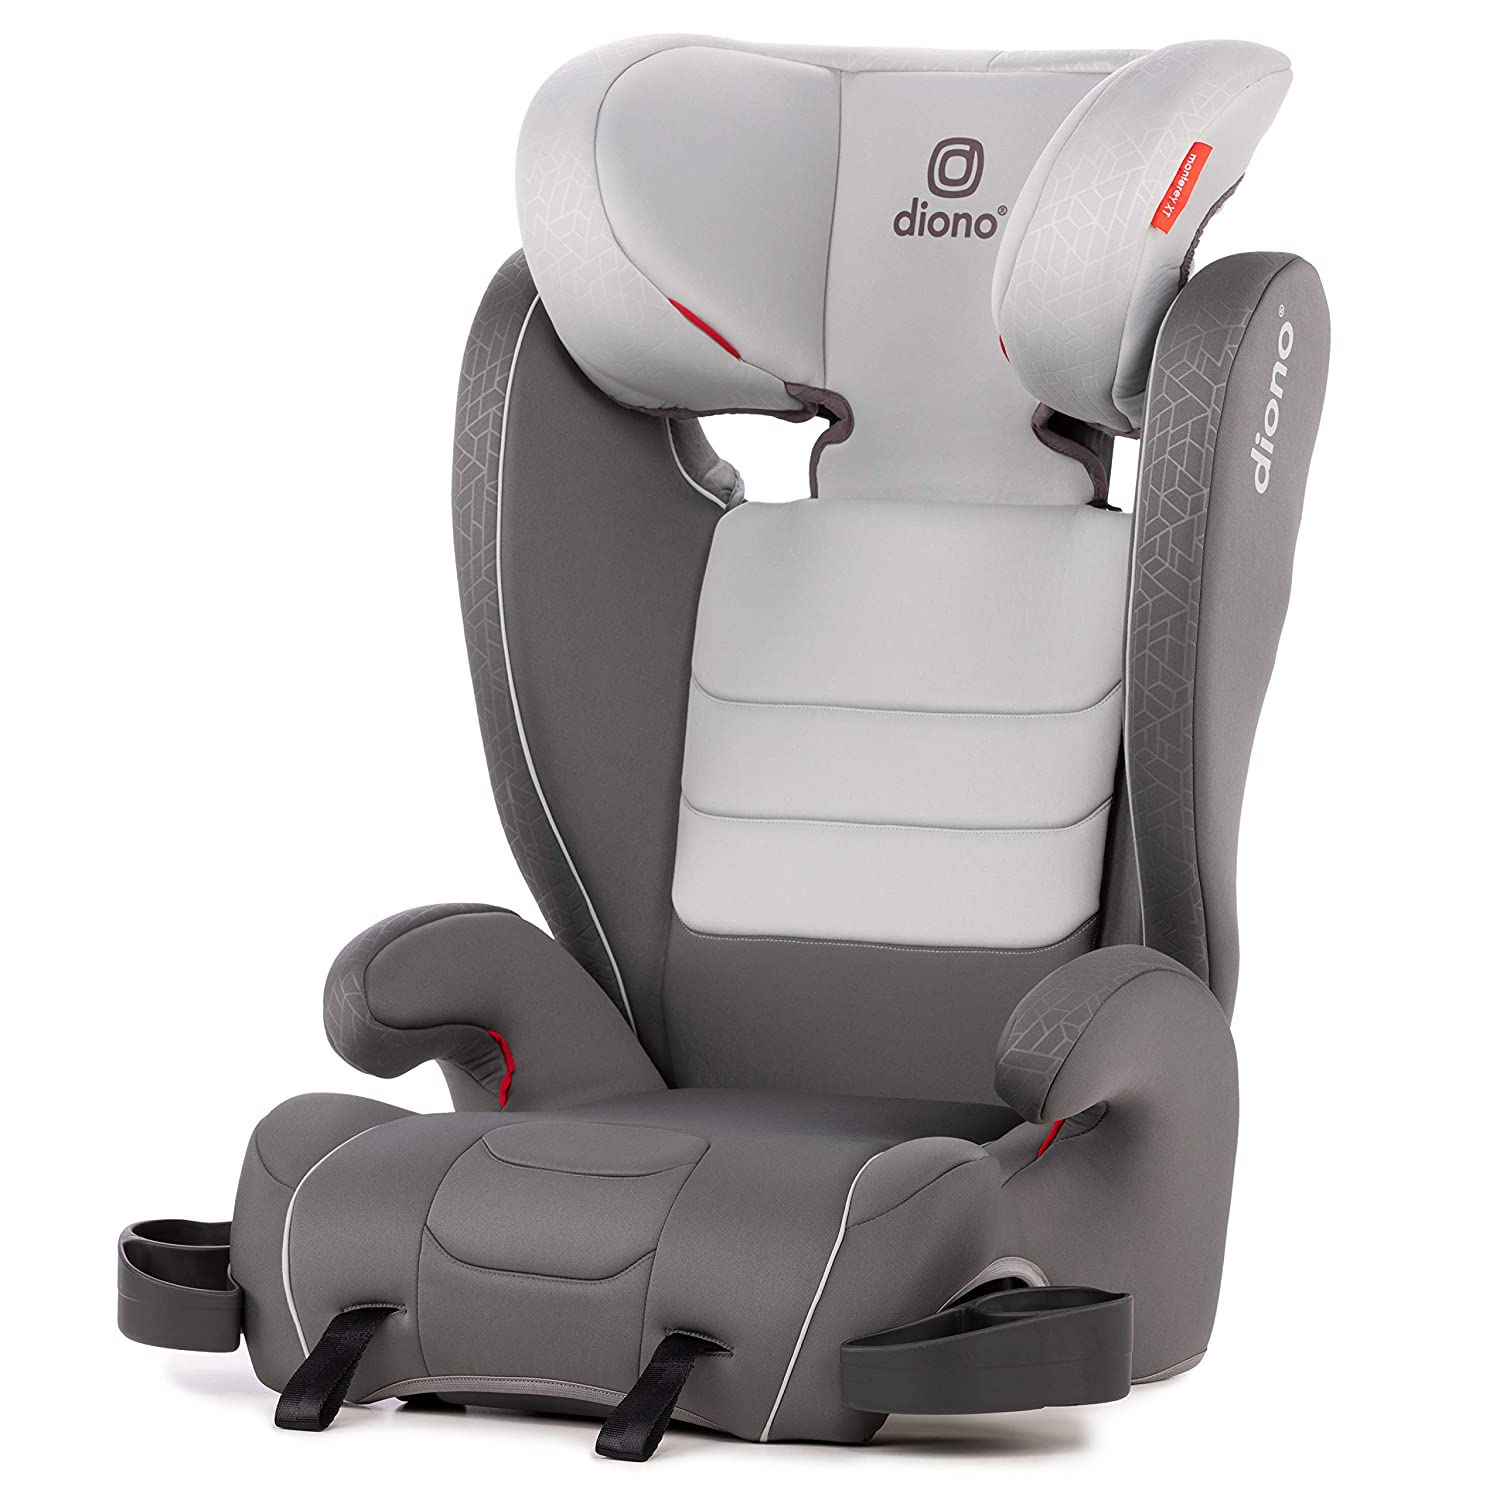 Diono Monterey Car Seat Best under budget Car seat for 4 years old